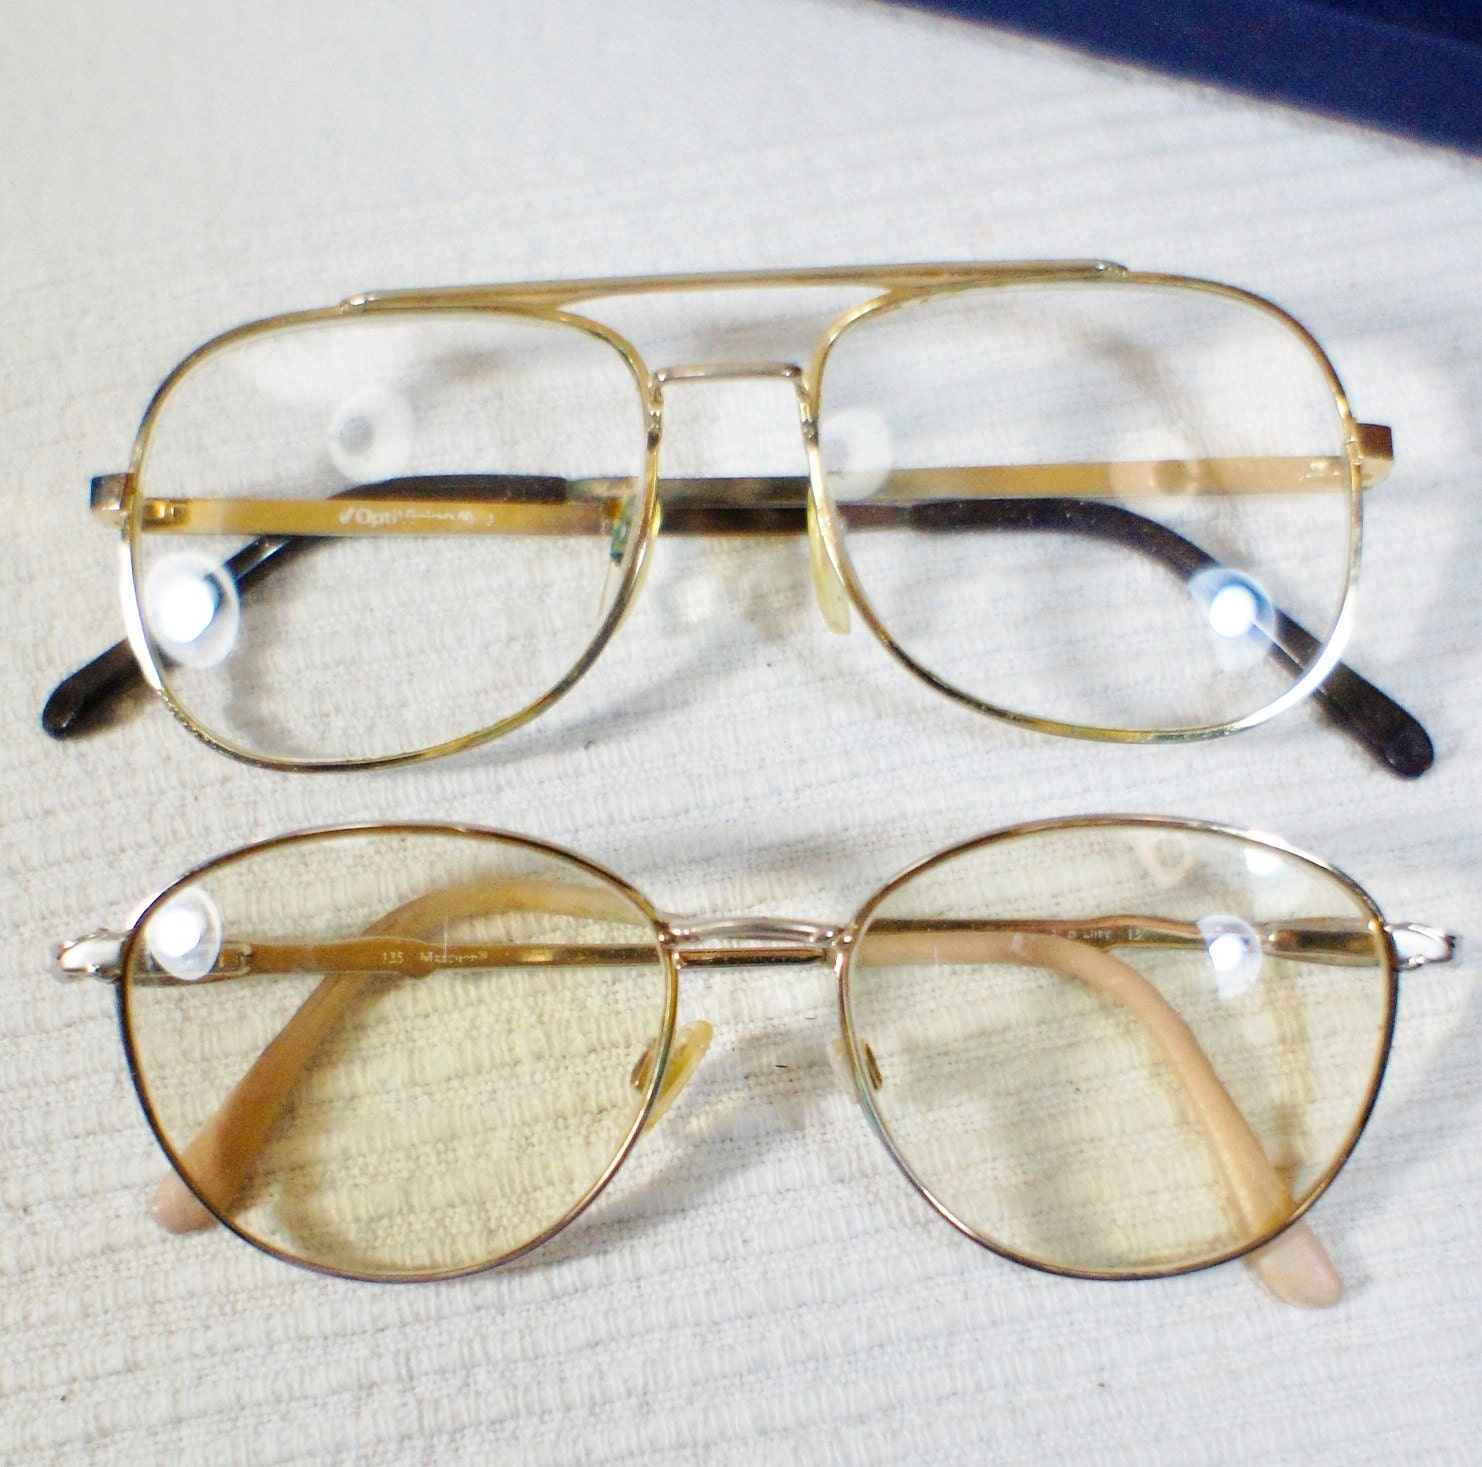 2 Pair vintage prescription eyeglasses Gold frames Men Women